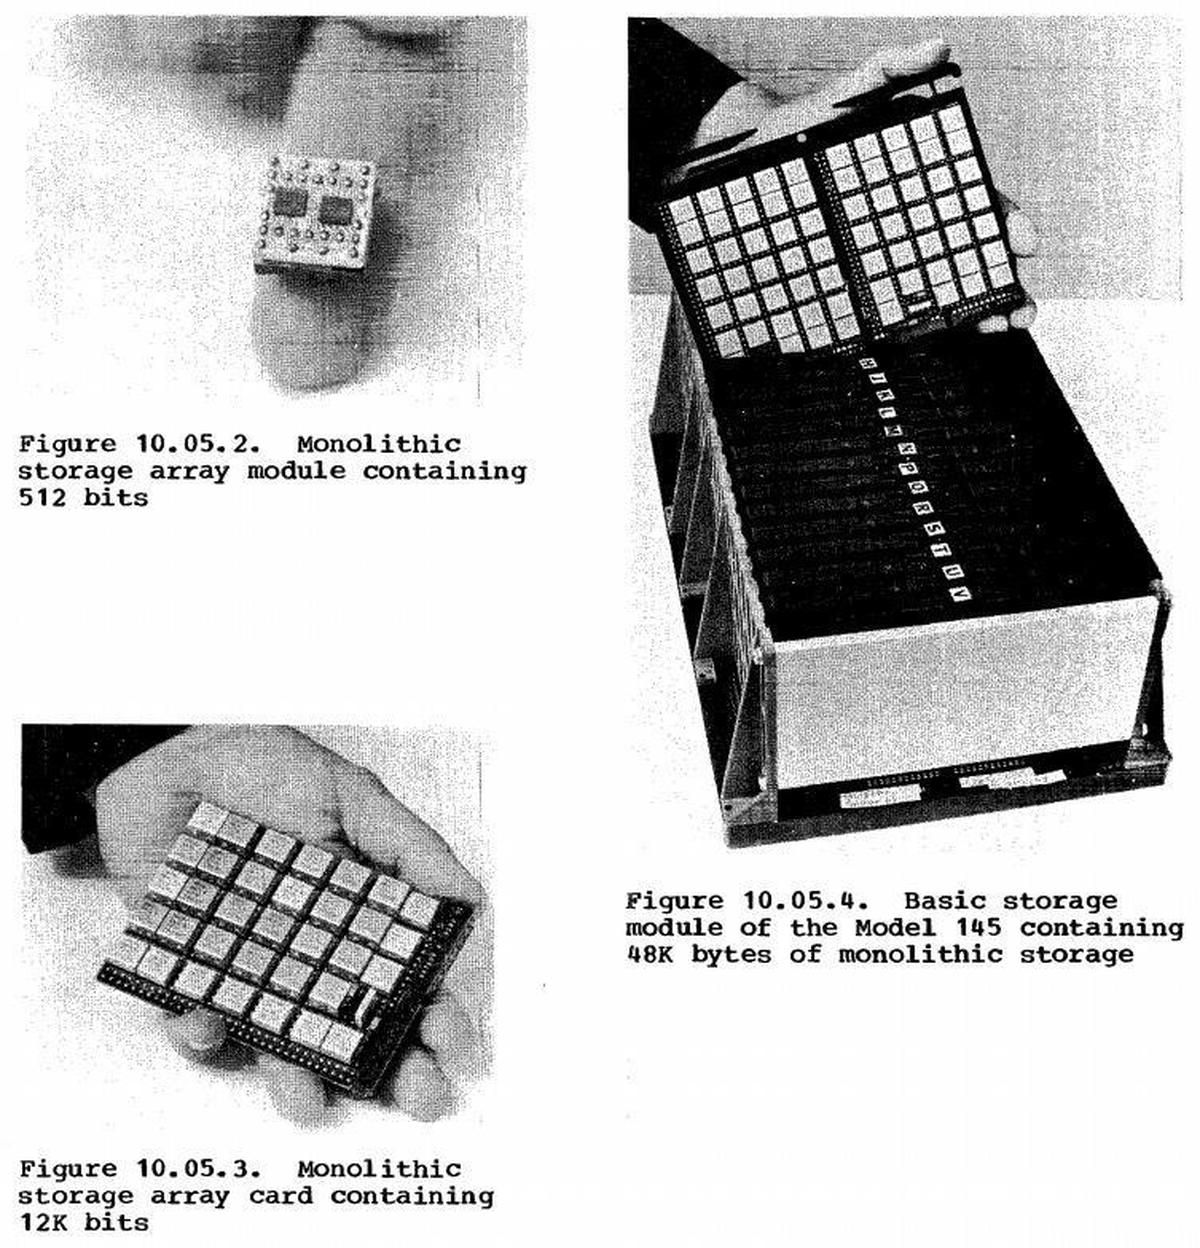 Photos showing the 512-bit memory module, the 12-kilobit memory card, and the 48-kilobyte basic storage module. Photos from IBM 370 guide.